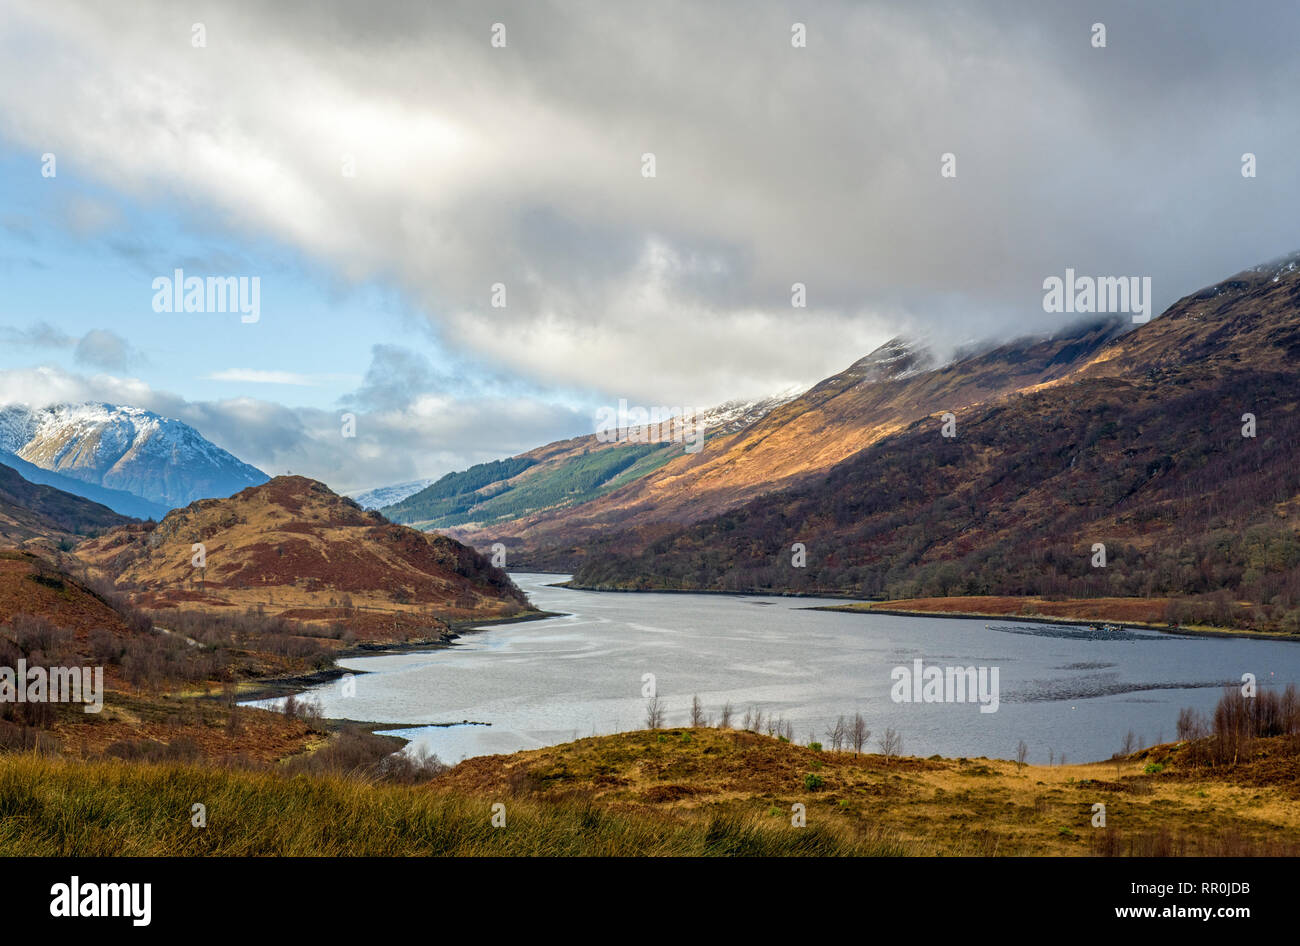 Looking down Loch Leven from near Kinlochleven Scotland with the mountains and glens in view. - Stock Image